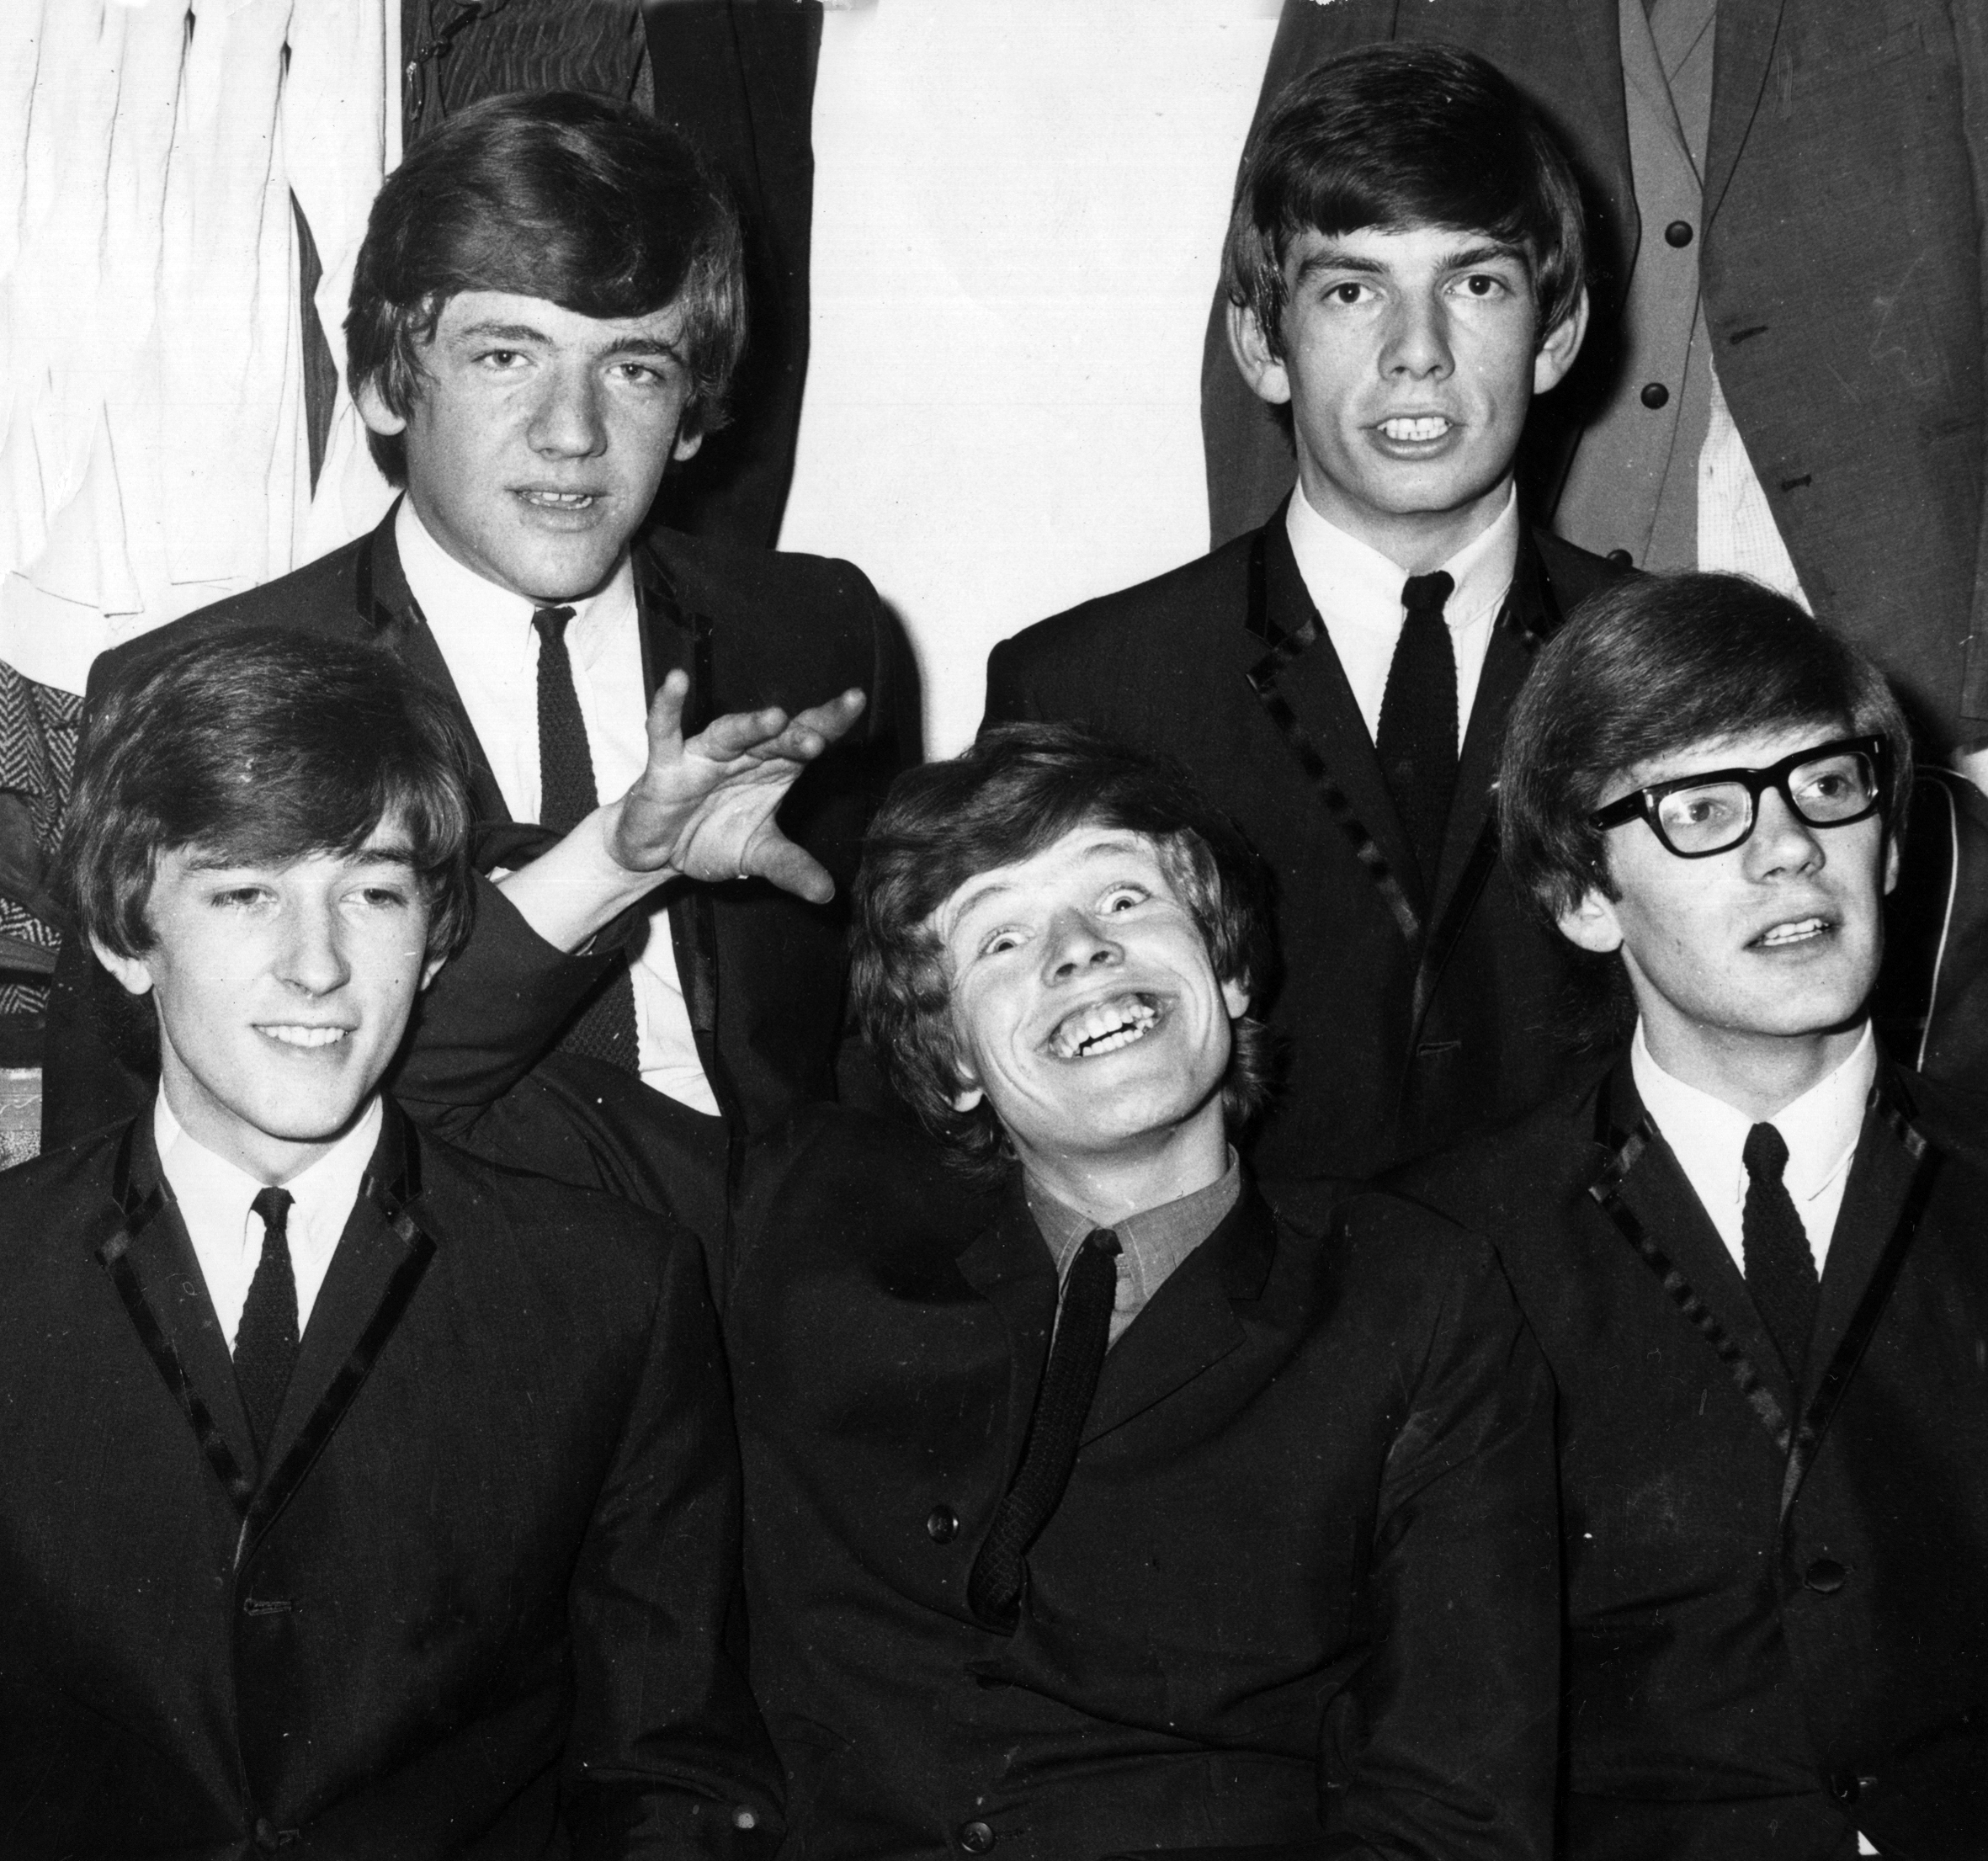 Herman and Hermits